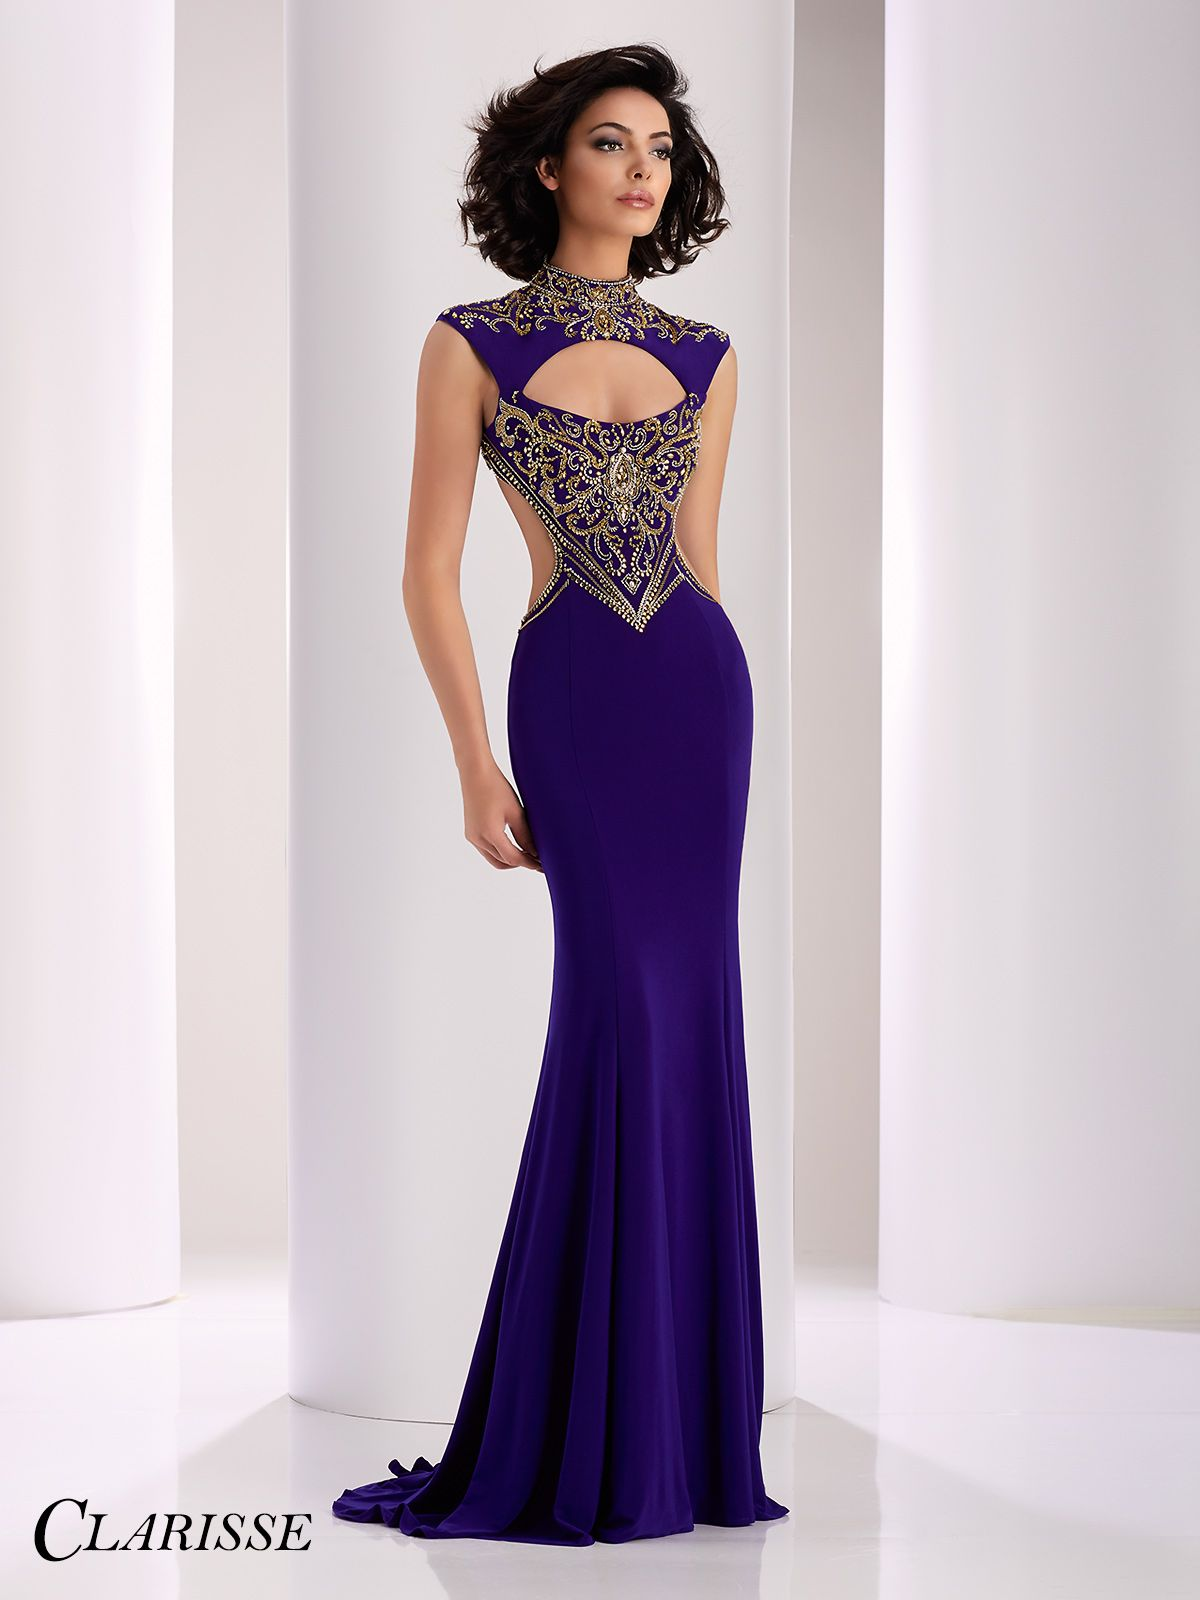 Clarisse purple and gold cutout prom dress extravagantes